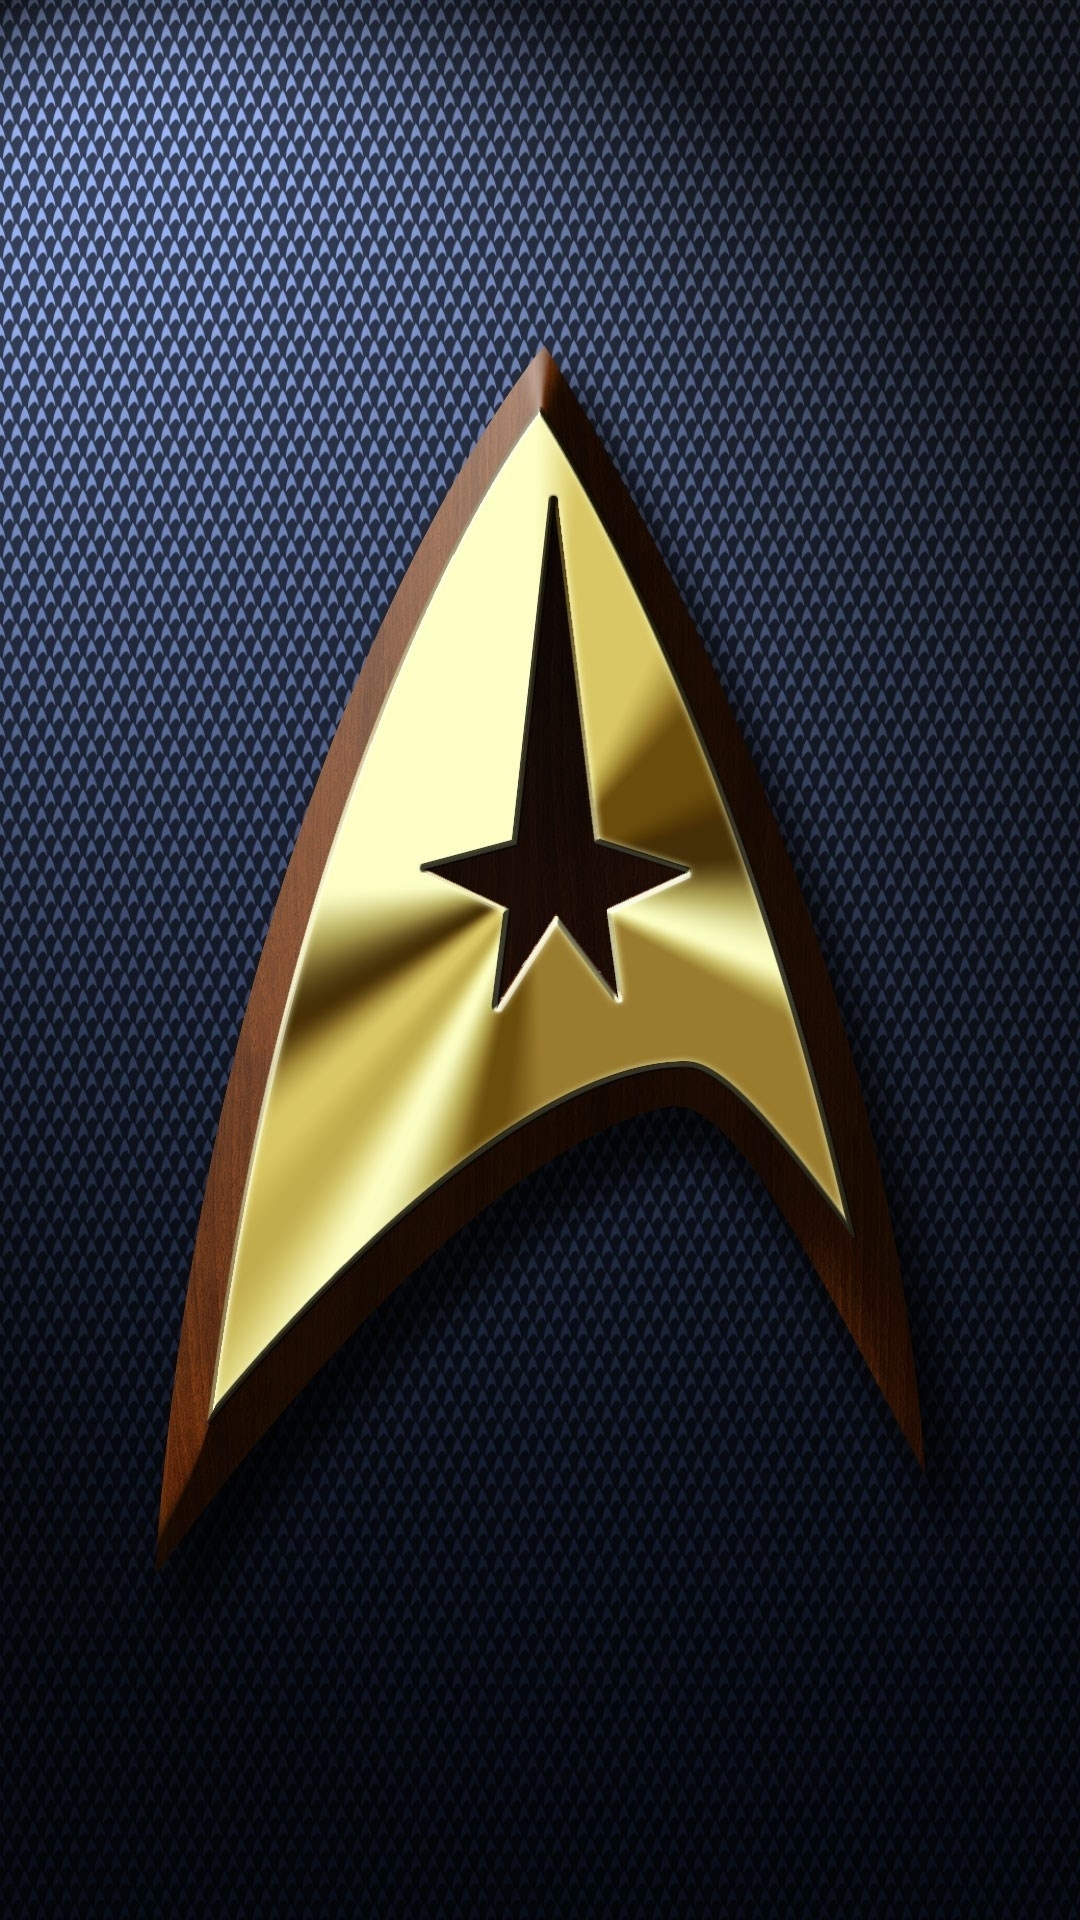 10 top star trek android wallpaper full hd 1080p for pc background